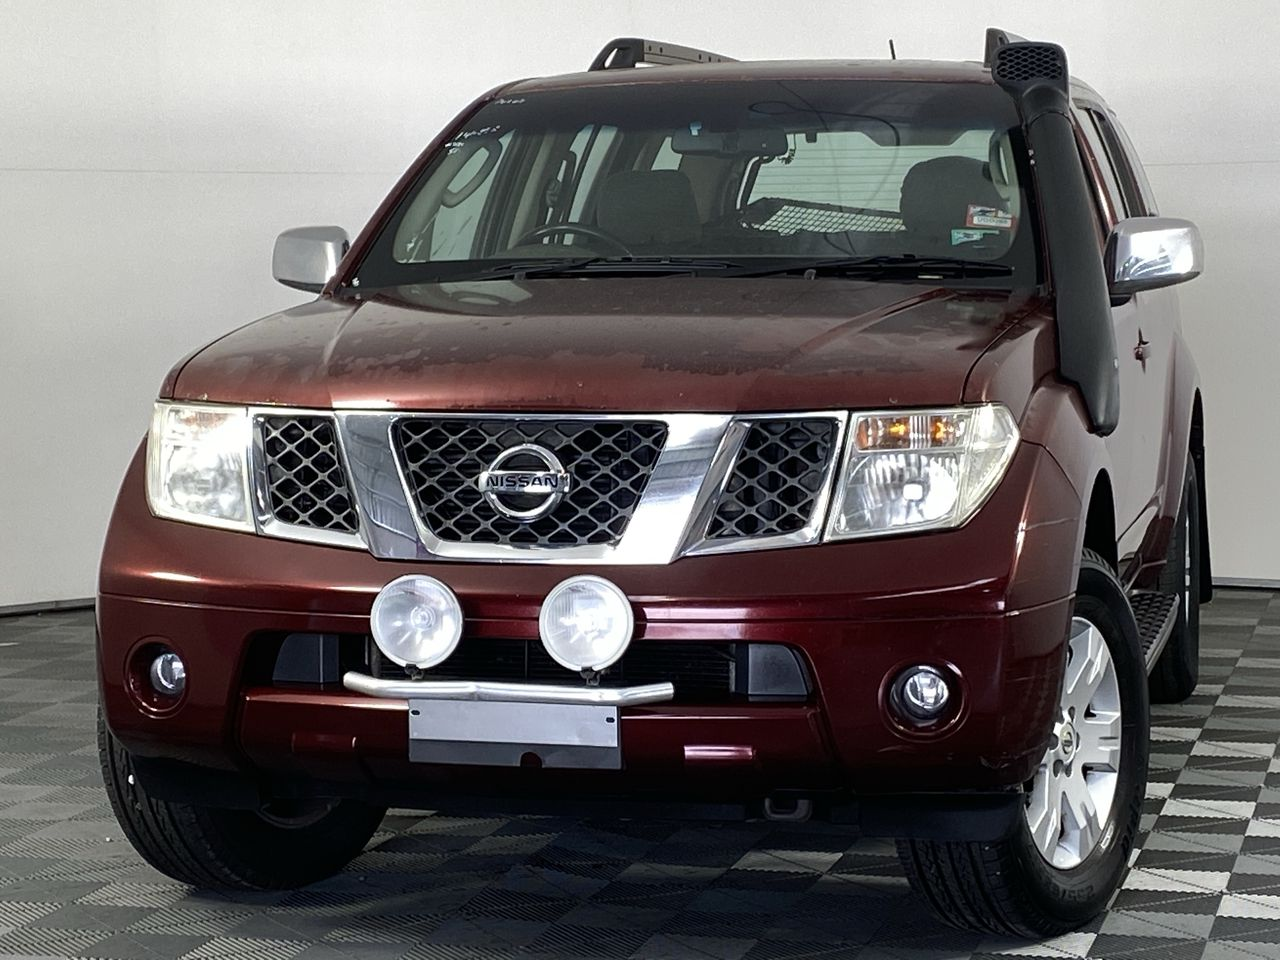 2006 Nissan Pathfinder ST-L (4x4) R51 Manual 7 Seats Wagon